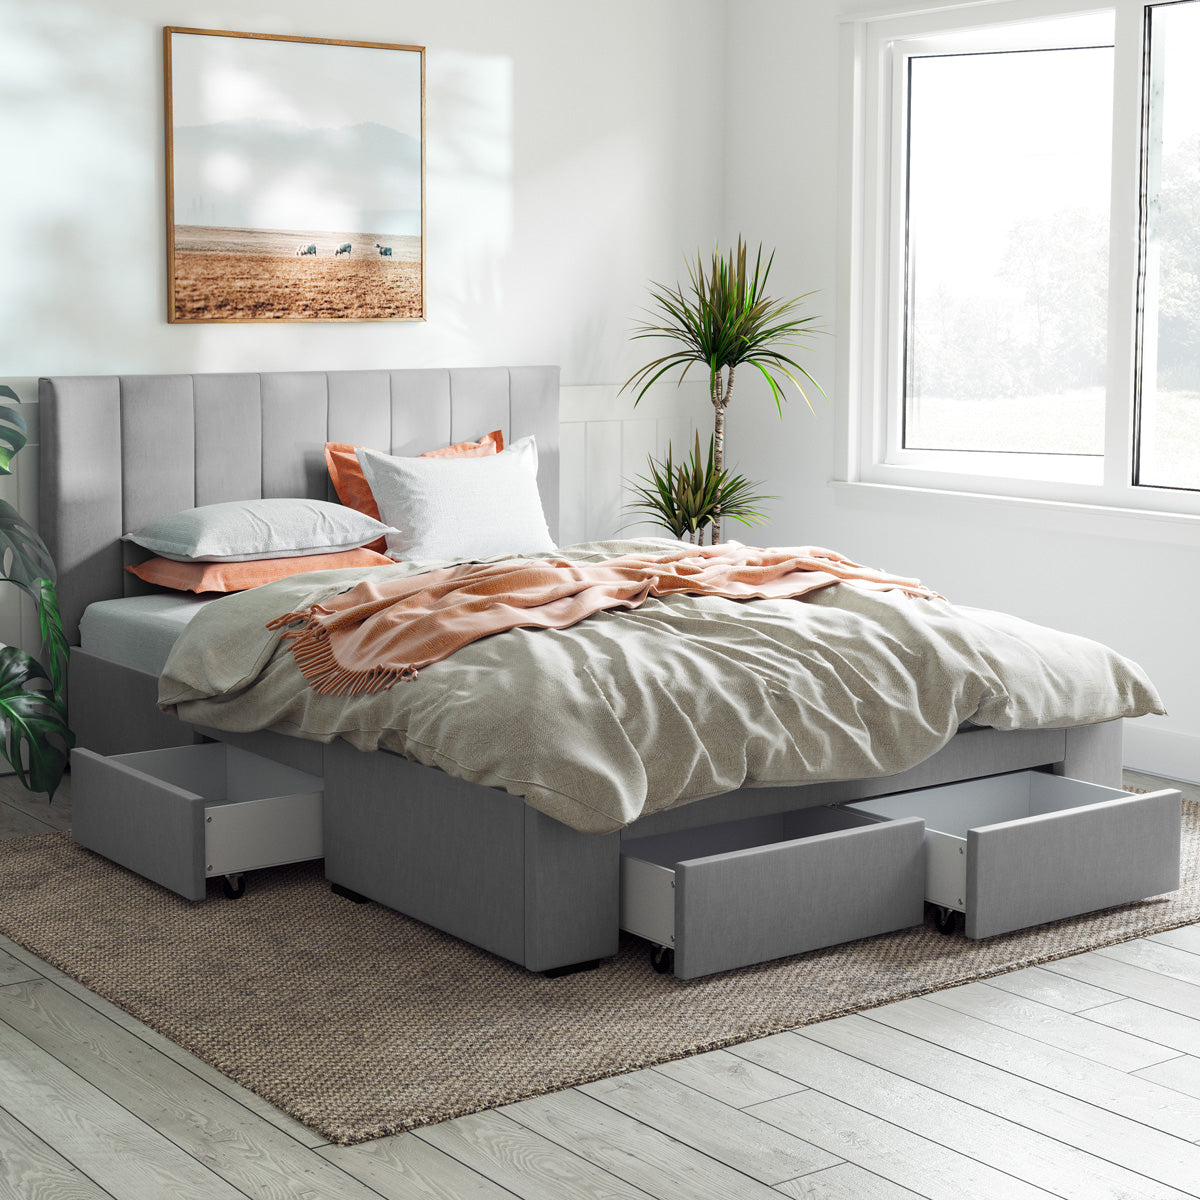 Ormond Bed Frame With Four Storage Drawers Grey Fabric Tommy Swiss